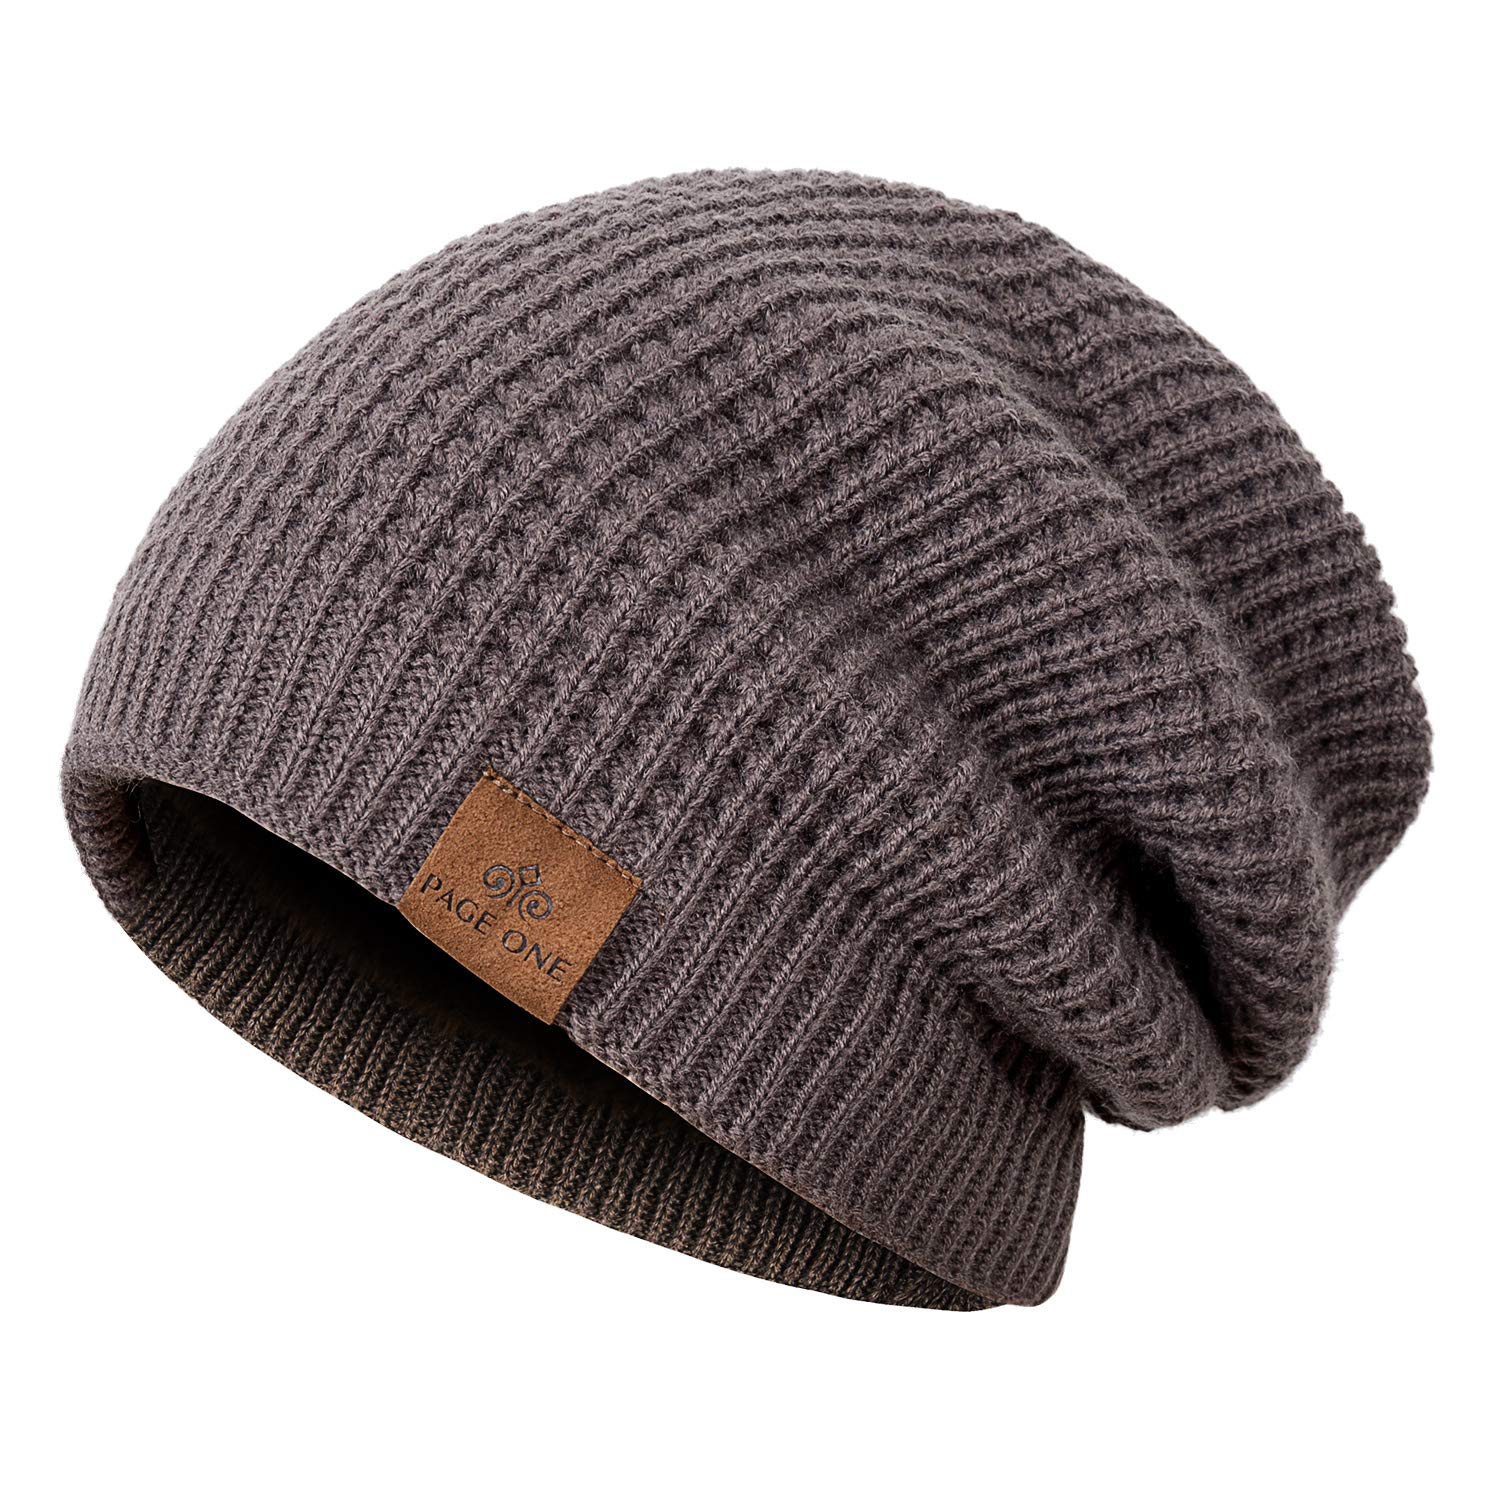 PAGE ONE Winter Beanie Hat Warm Knit Hat Men Thick Fleece Lined Winter Hat